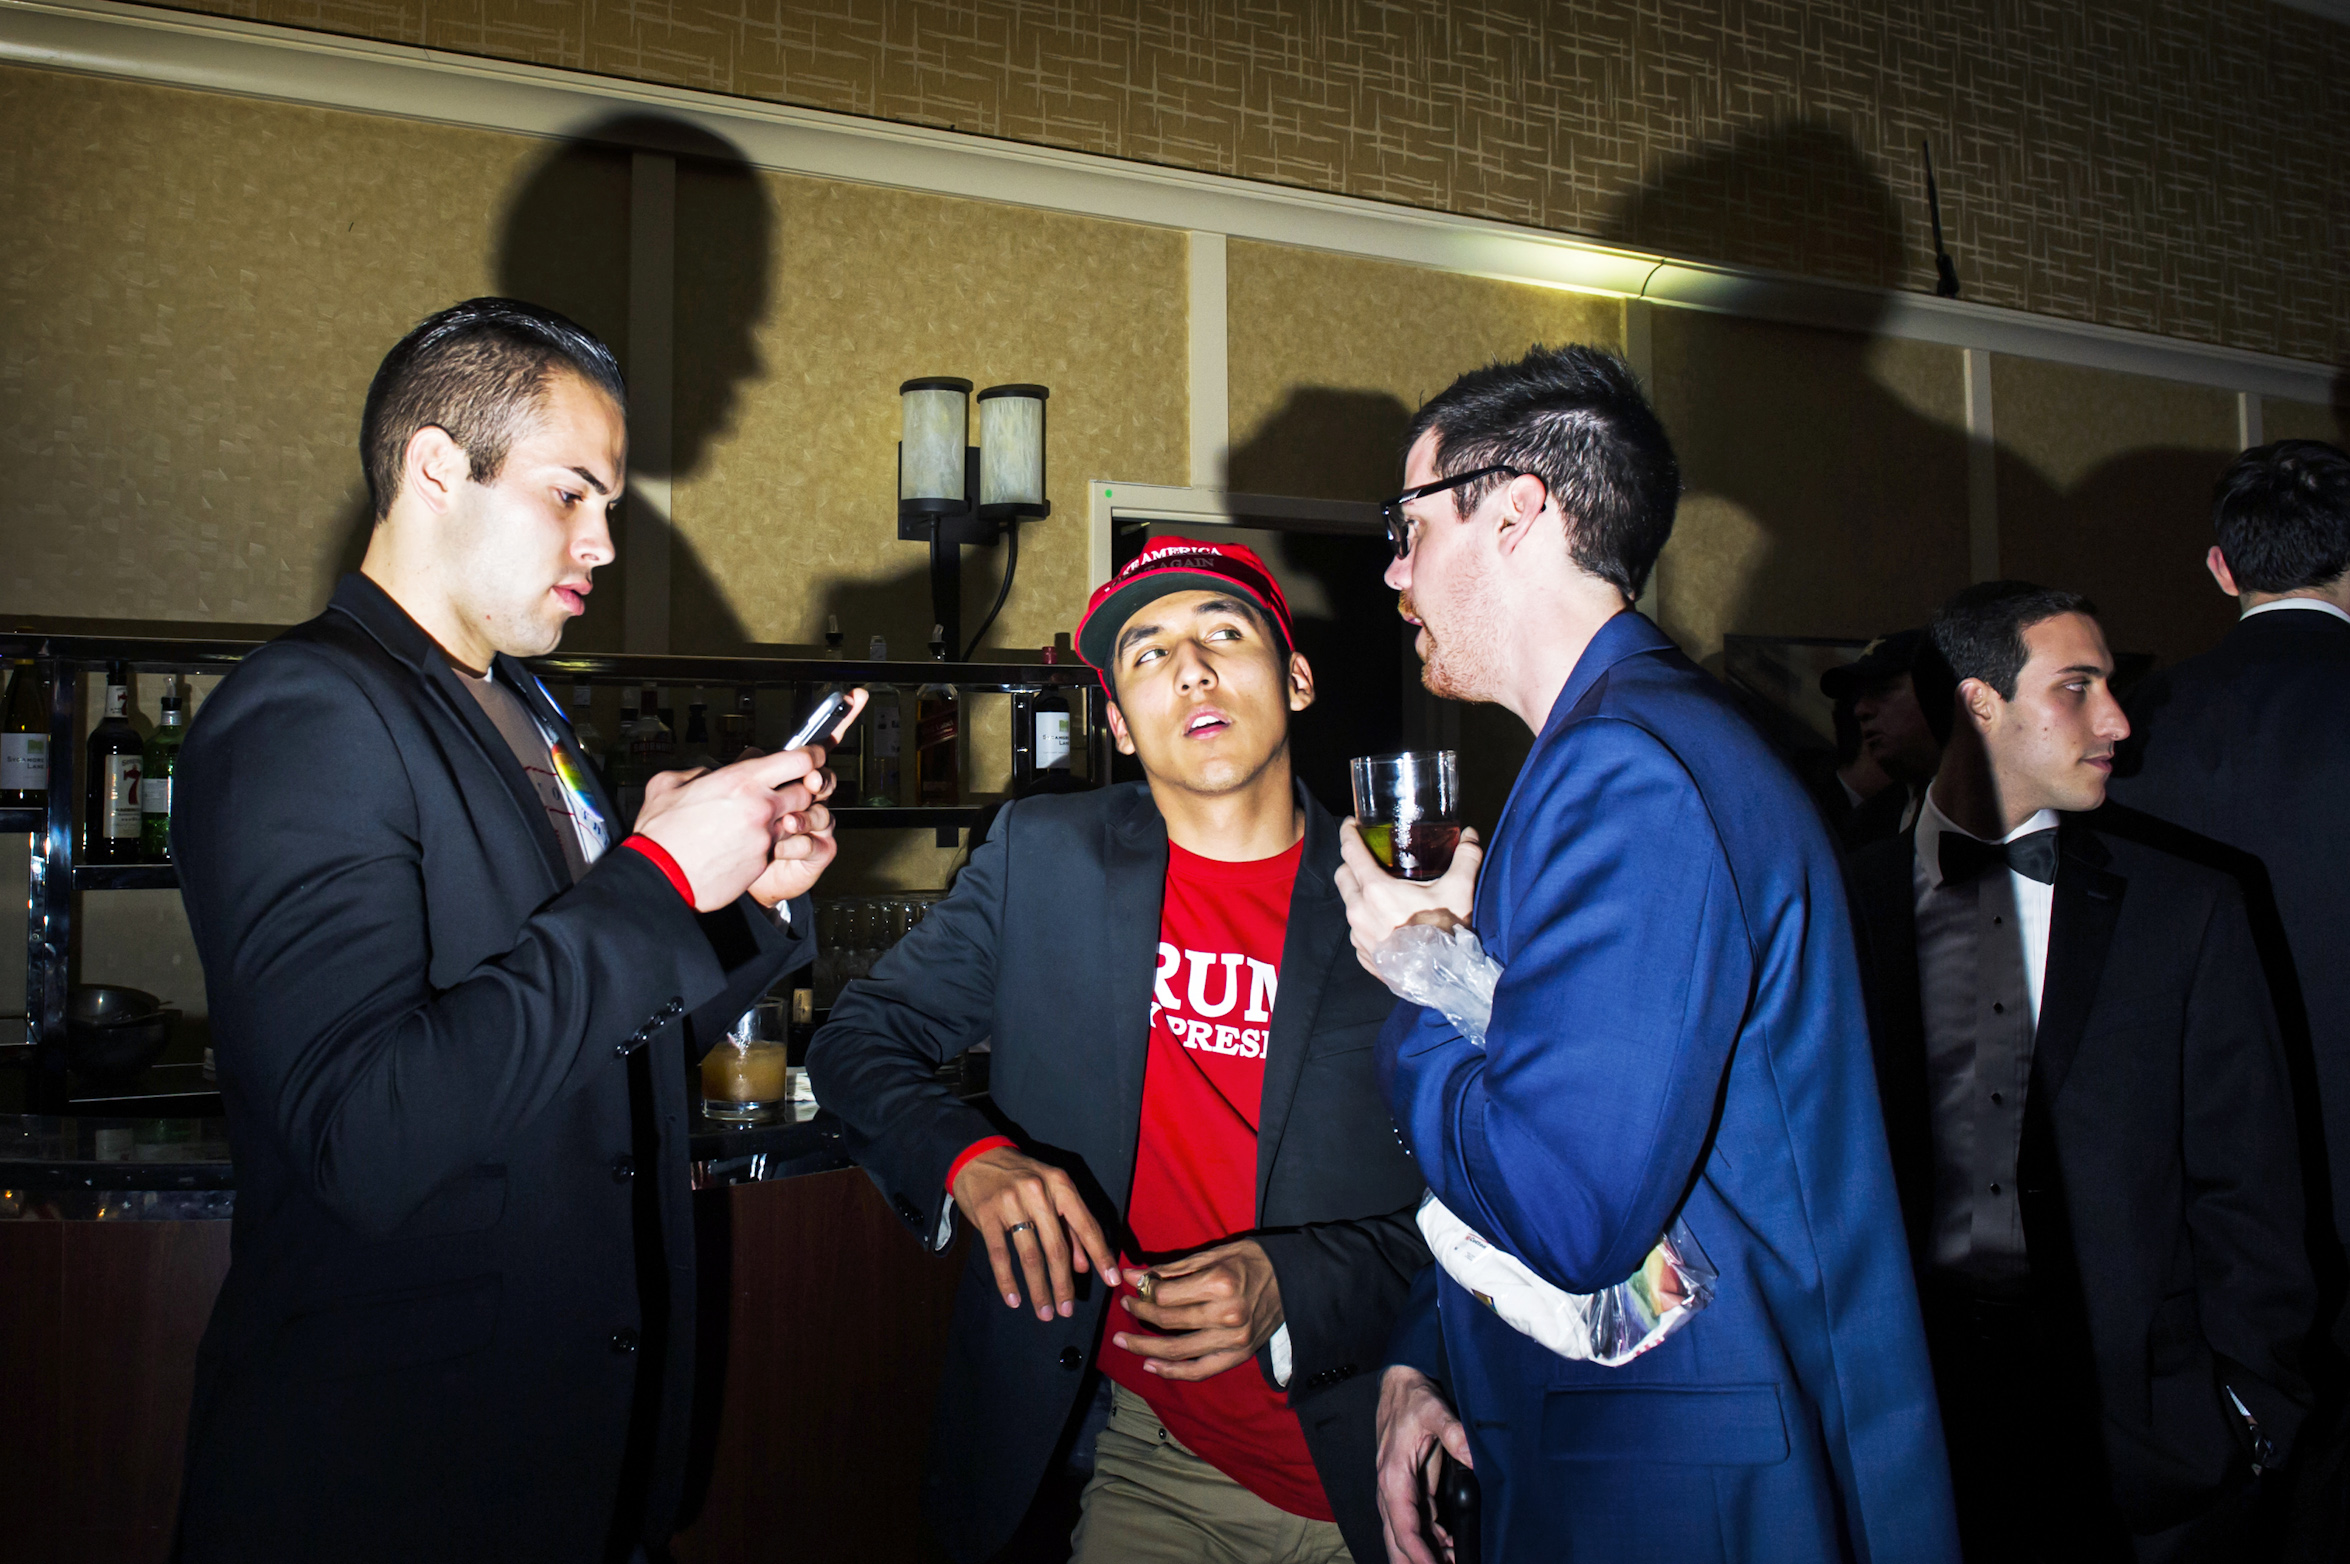 The bar scene at the Inaugural Deploraball hosted by Gays for Trump at the Bolger Center in Potomac, Maryland on January 20, 2017.